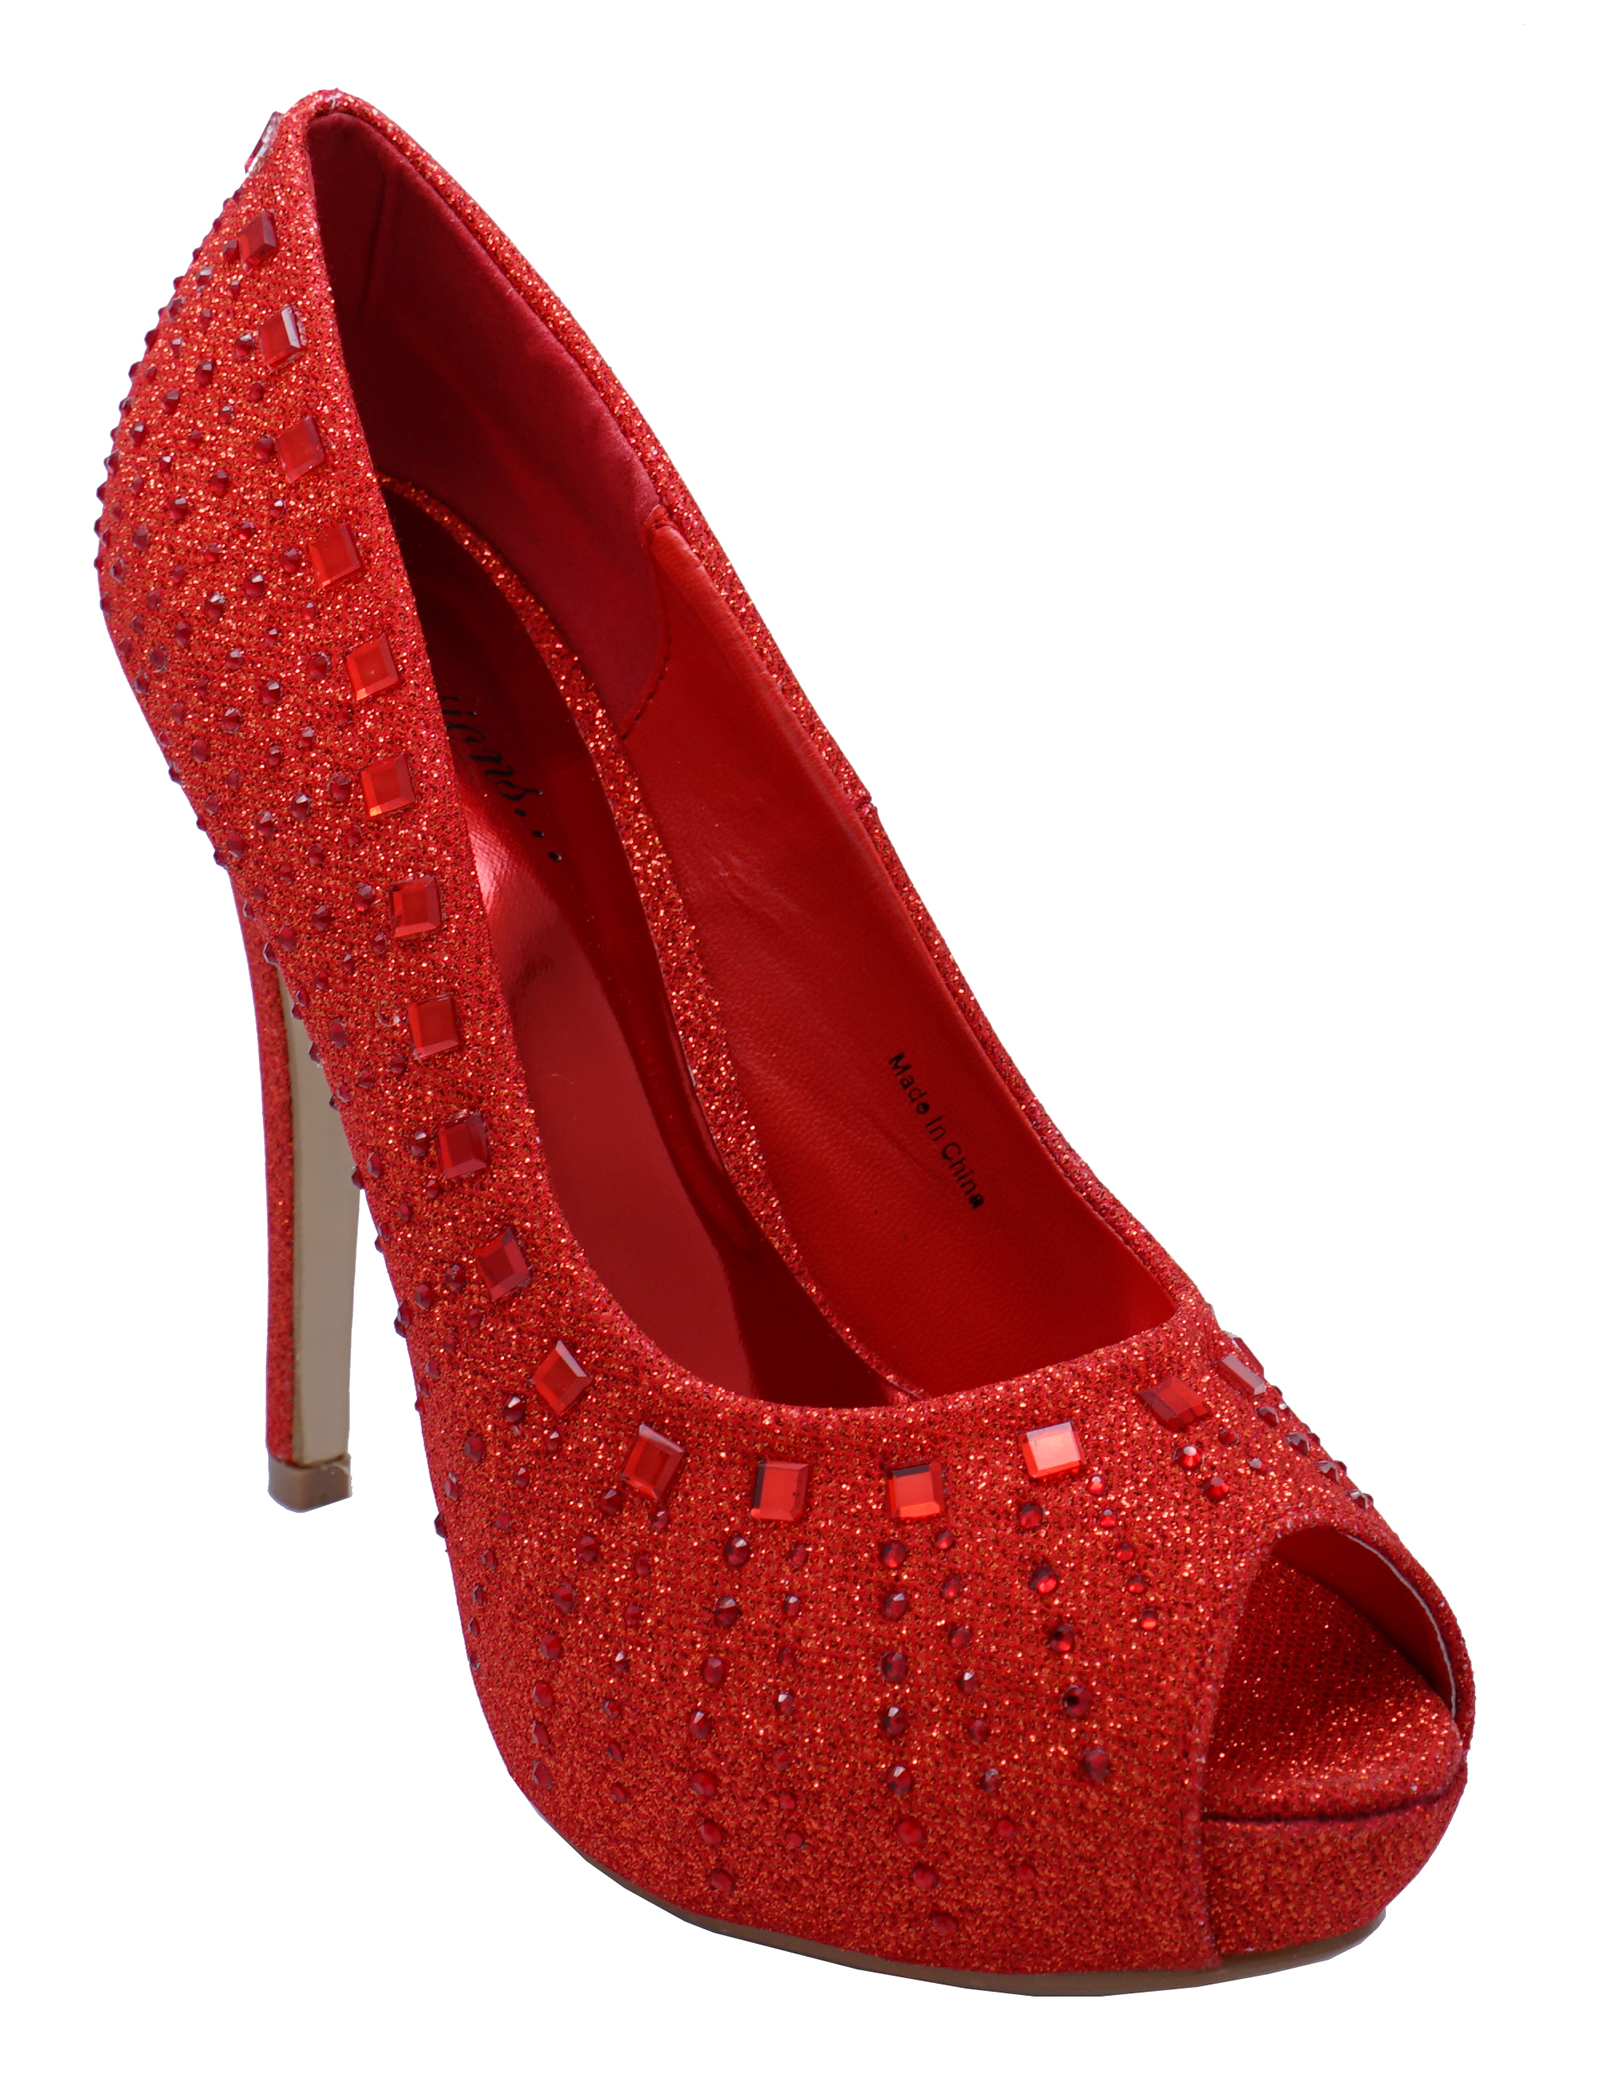 63edff0a731c Details about WOMENS RED GLITTER OPEN-TOE WEDDING PROM DIAMANTE EVENING  SHOES SIZES 3-8